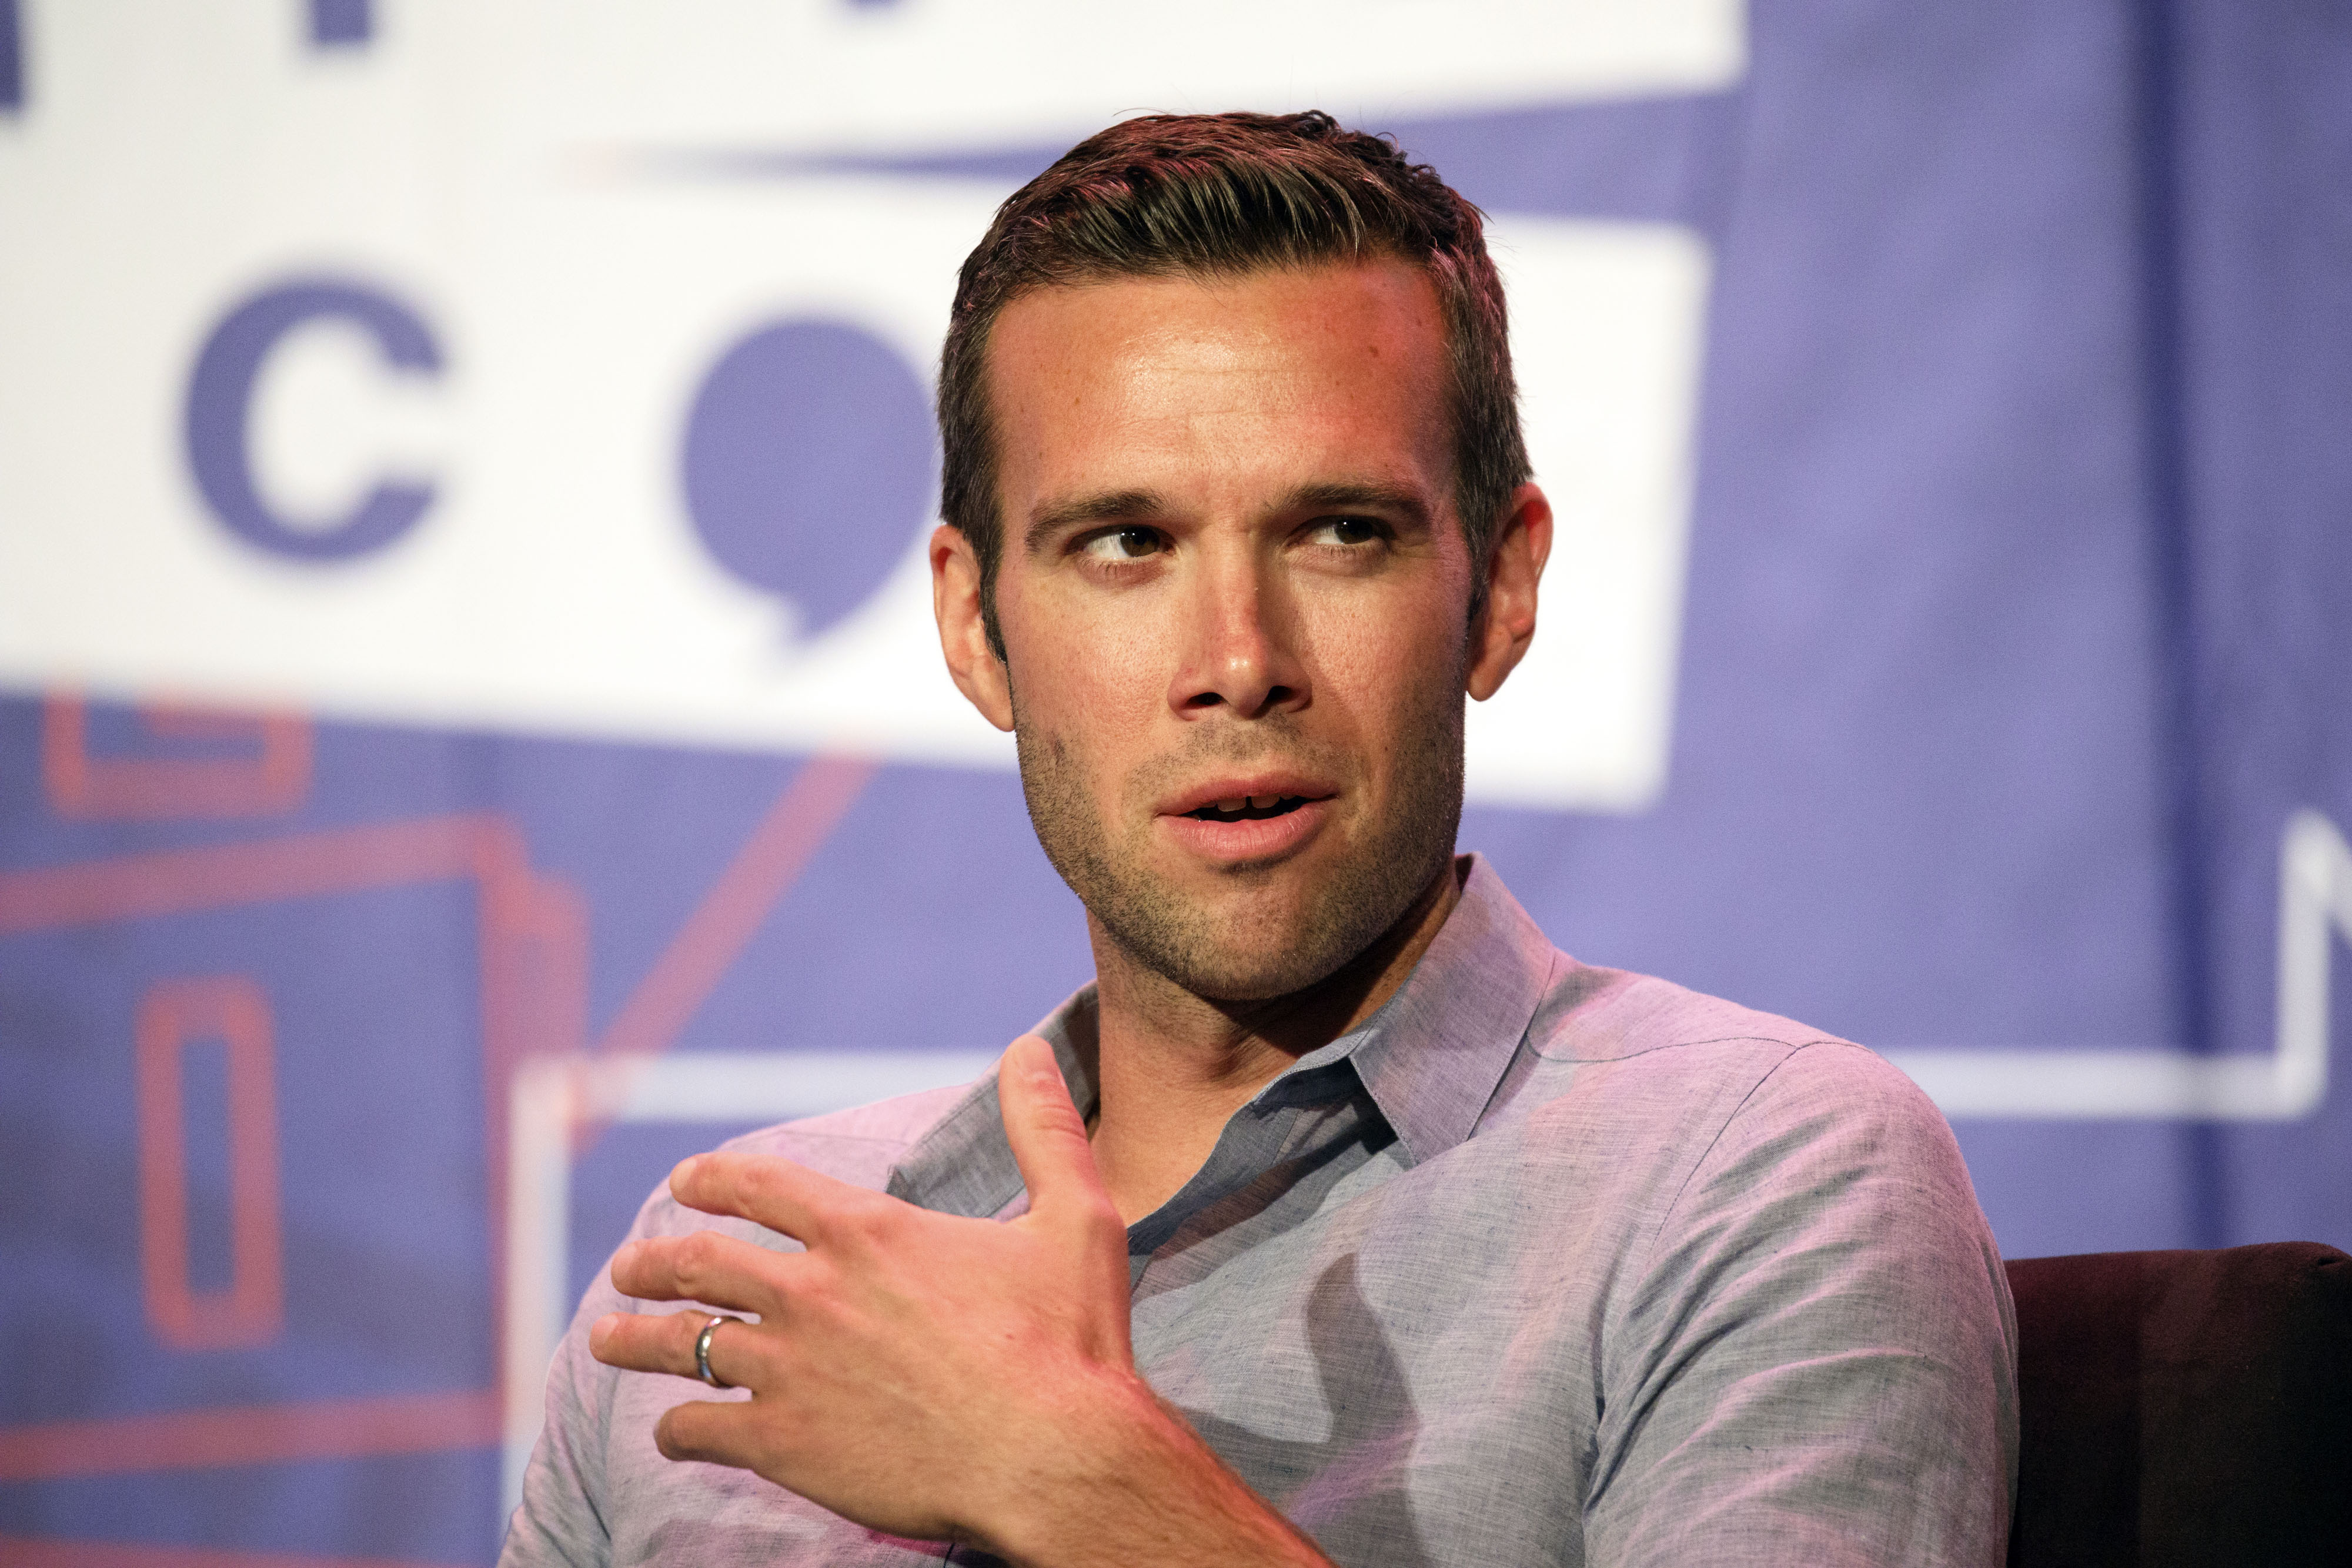 Jon Favreau, former chief speechwriter for President Barack Obama, speaks during the Politicon convention inside the Pasadena Convention Center in Pasadena, Calif., on, July 29, 2017.